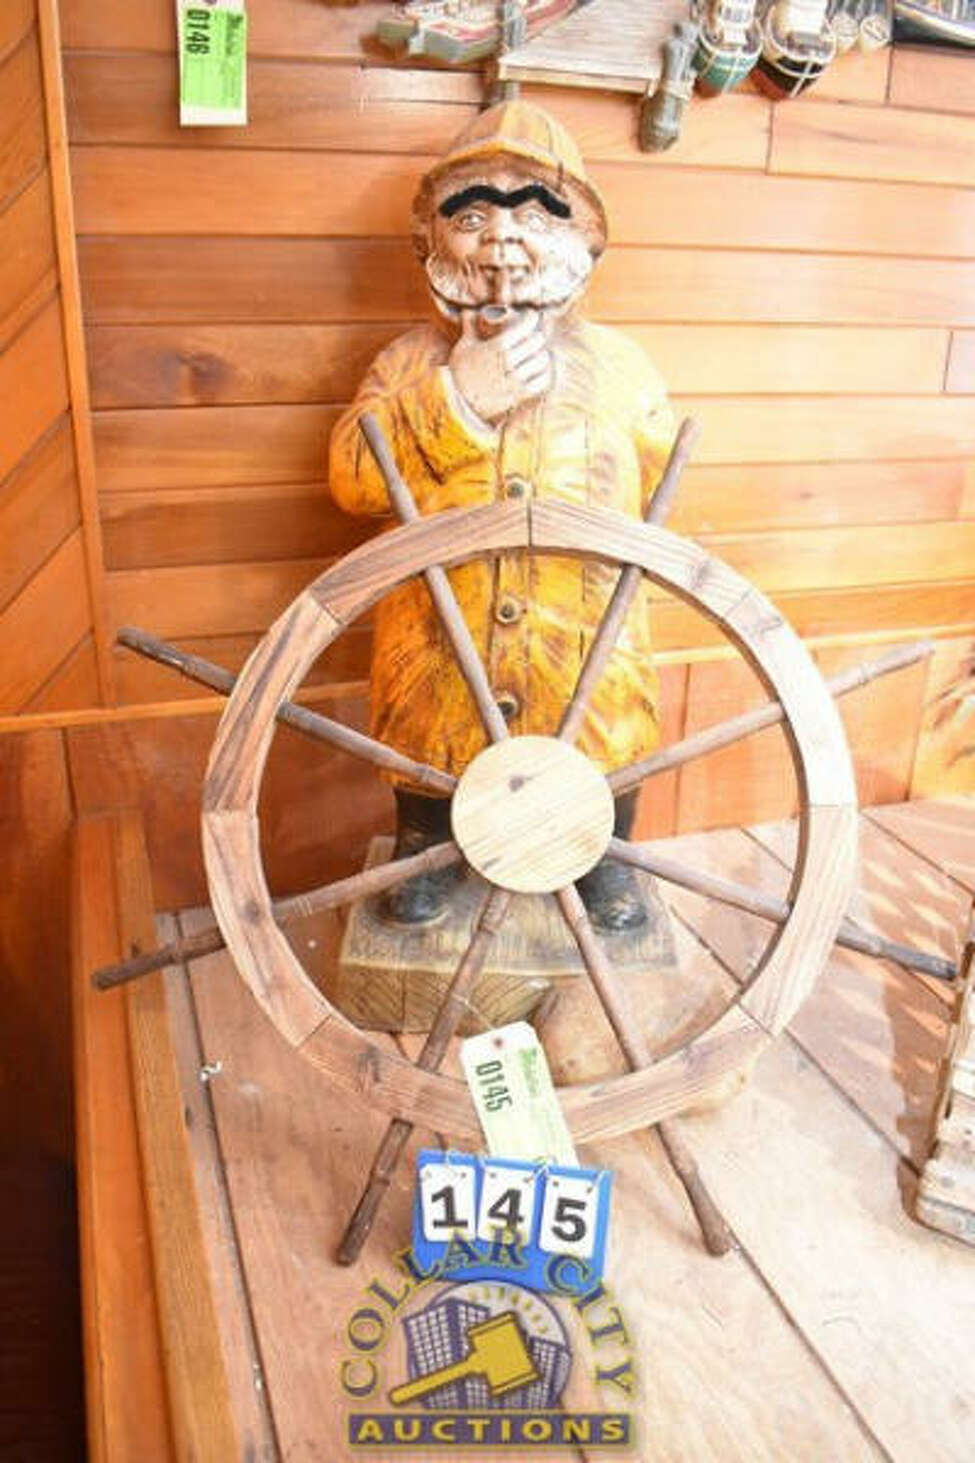 Collar City Auctions is accepting online bids through 11 a.m. today (10/21) for furniture, fixtures, equipment, etc., from the former Salty's Pub, which closed at the end of September after more than 40 years in business.